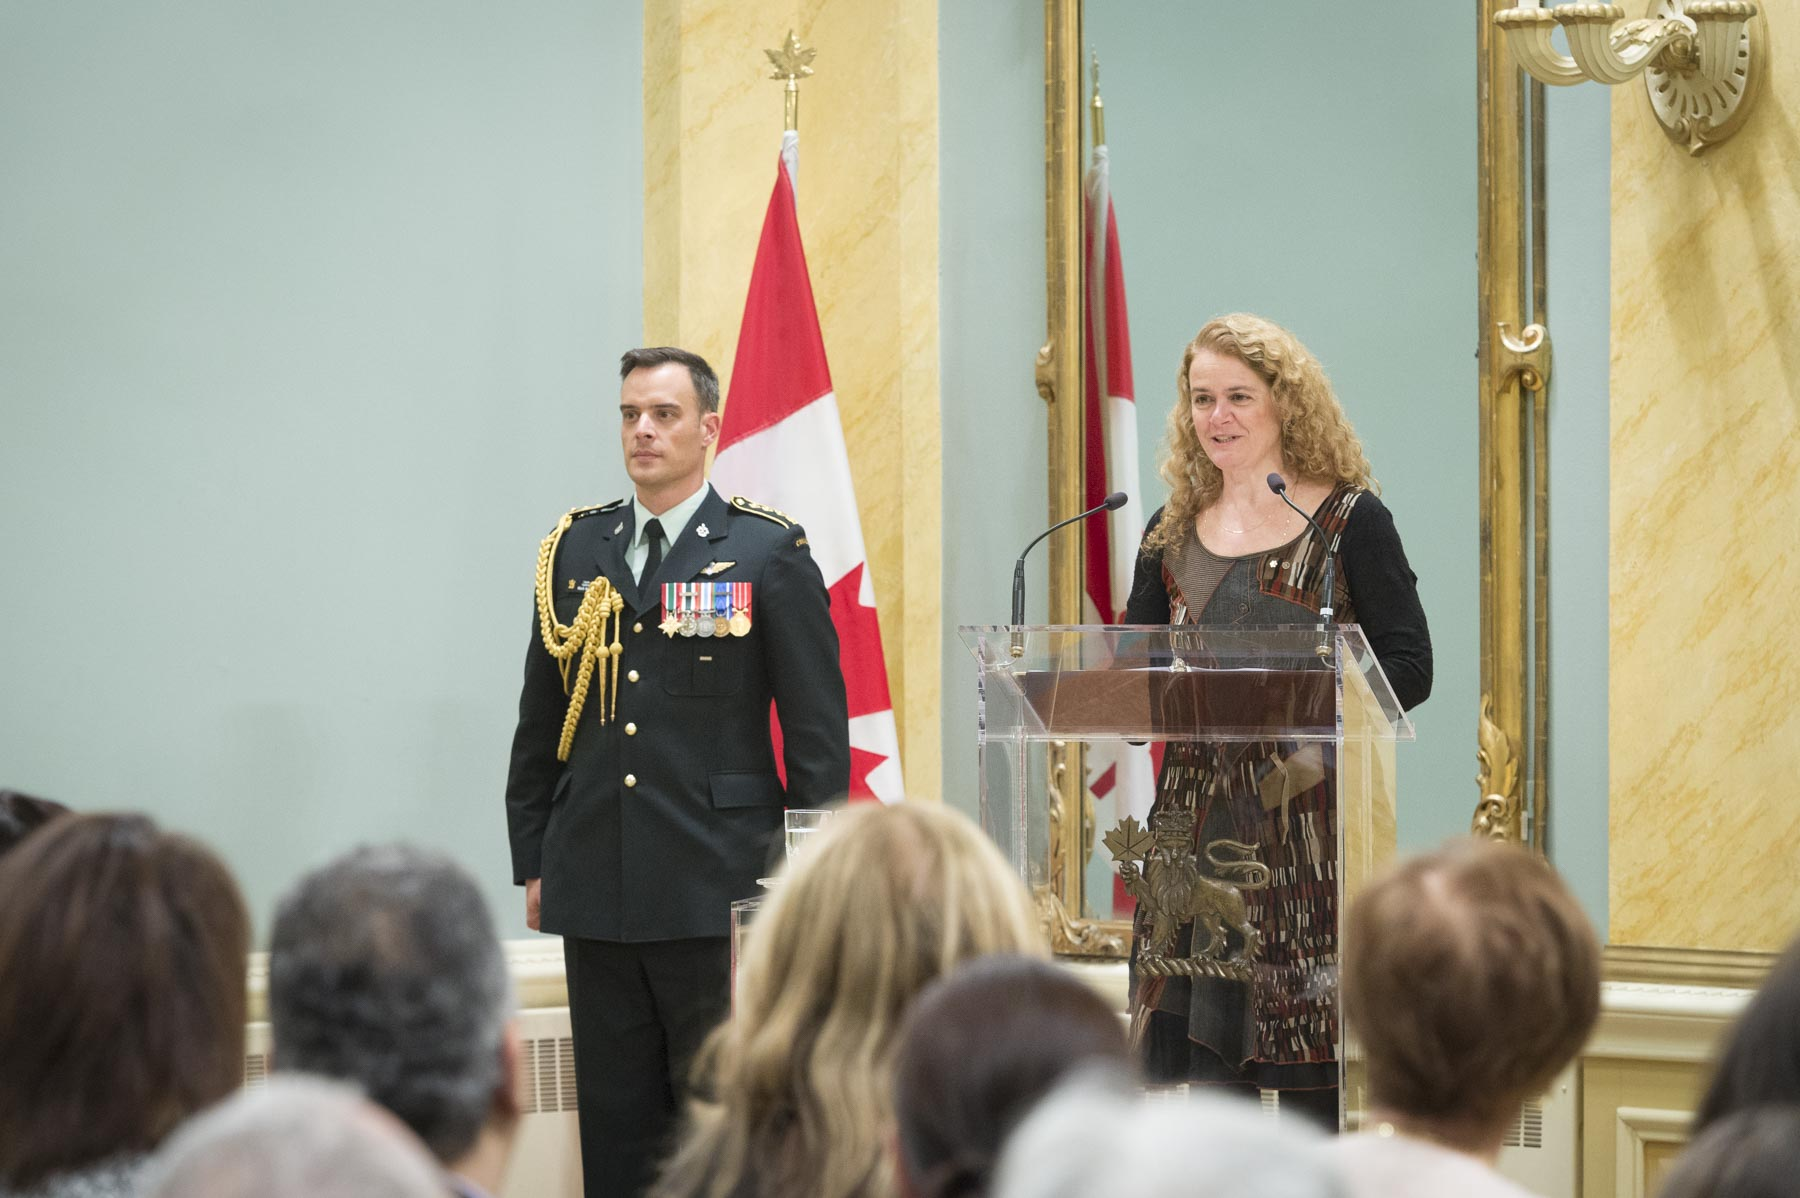 In celebration of National Volunteer Week, the Governor General presented the Sovereign's Medal for Volunteers to 41 individuals during a ceremony at Rideau Hall.